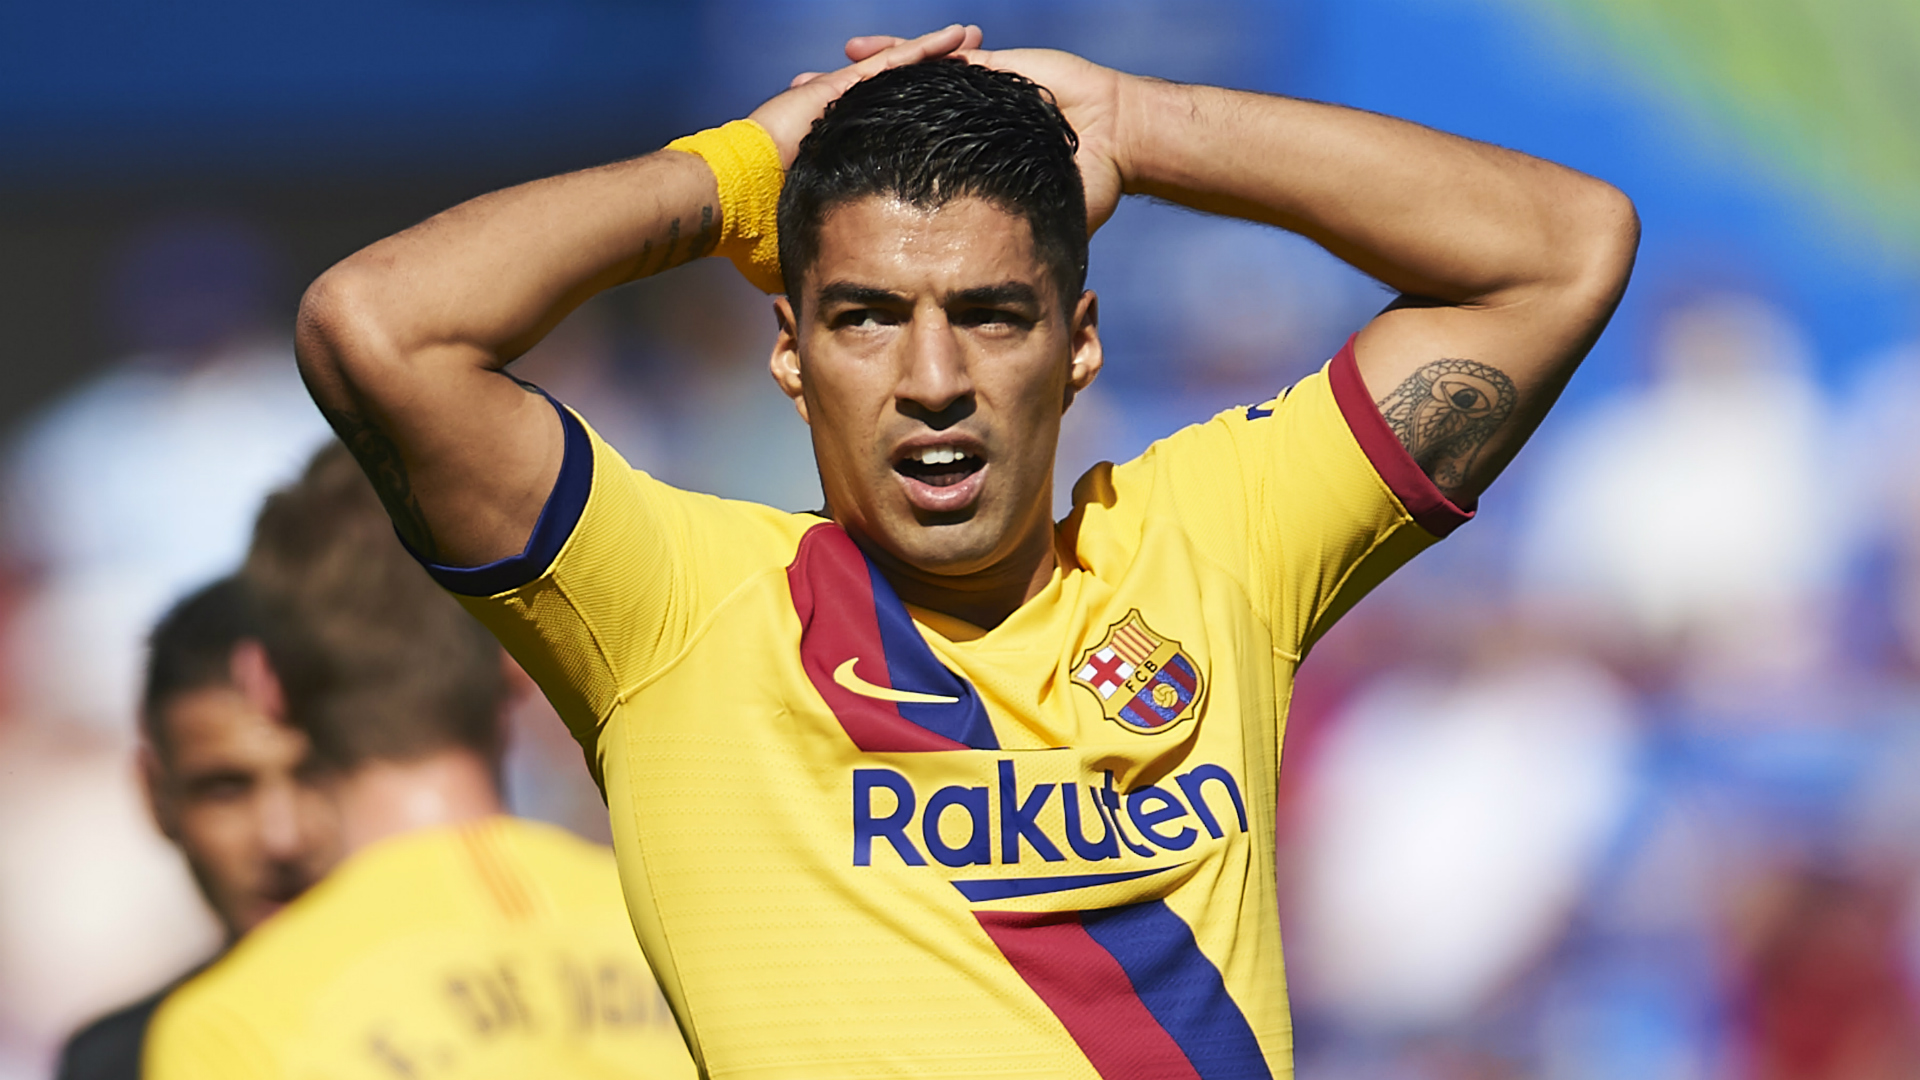 Luis Suarez injured: Champions League, Clasico, Uruguay WCQs - the biggest games Barca's no. 9 will miss